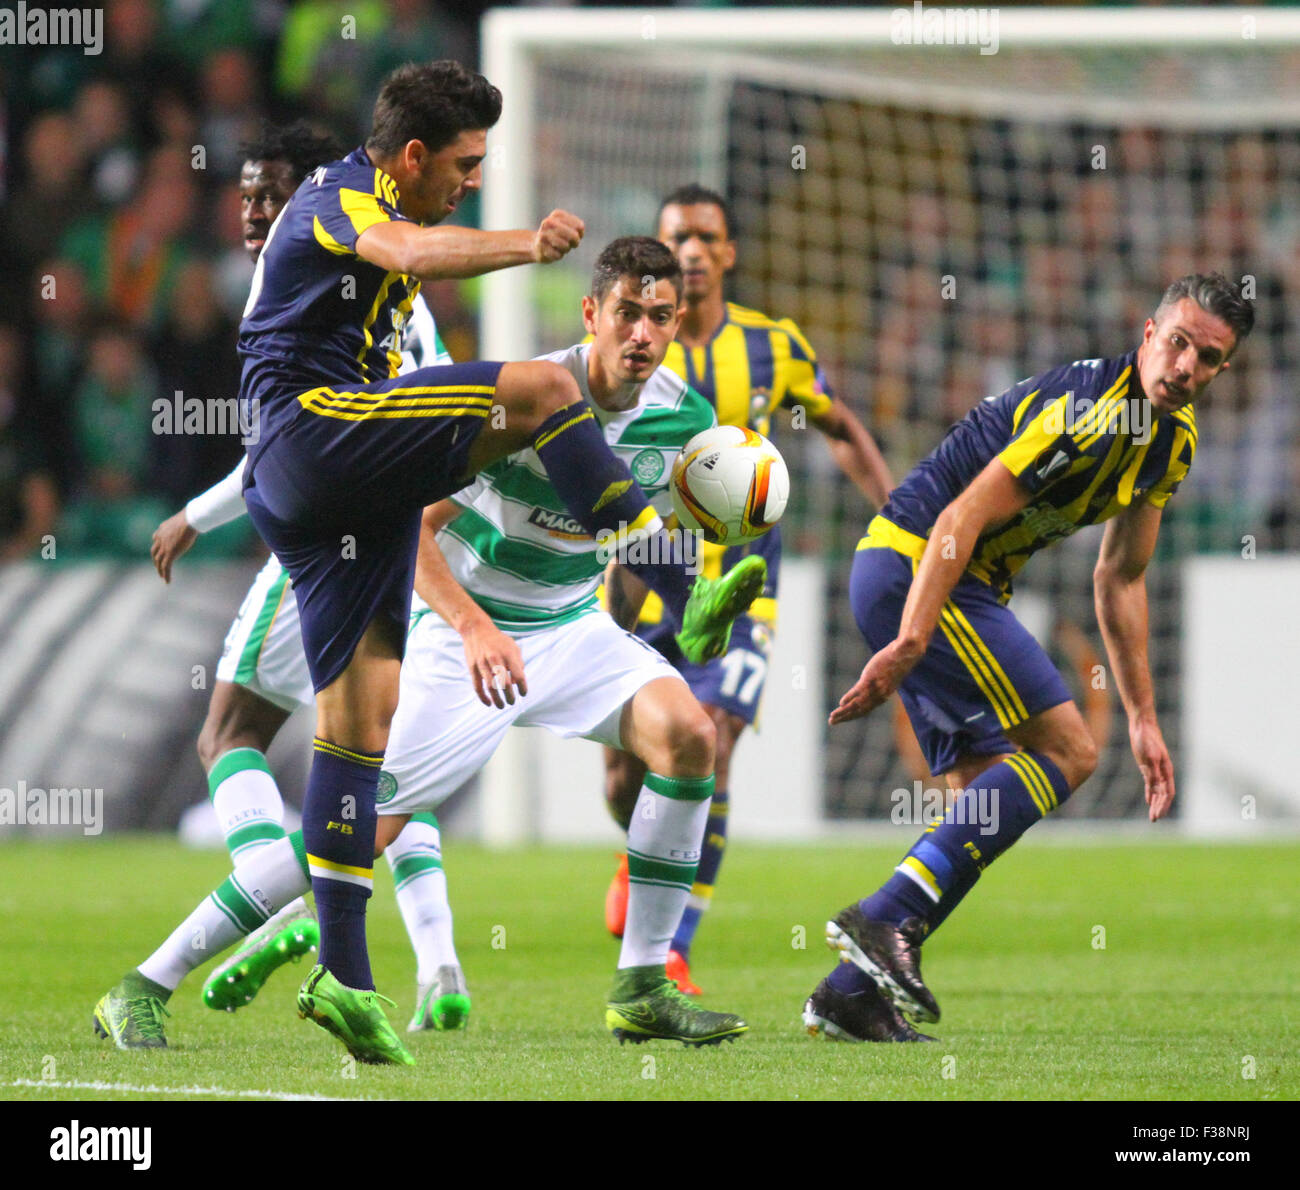 Glasgow, Scotland. 01st Oct, 2015. Europa League. Celtic versus Fenerbahce. Ozan Tufan steals the ball away from - Stock Image